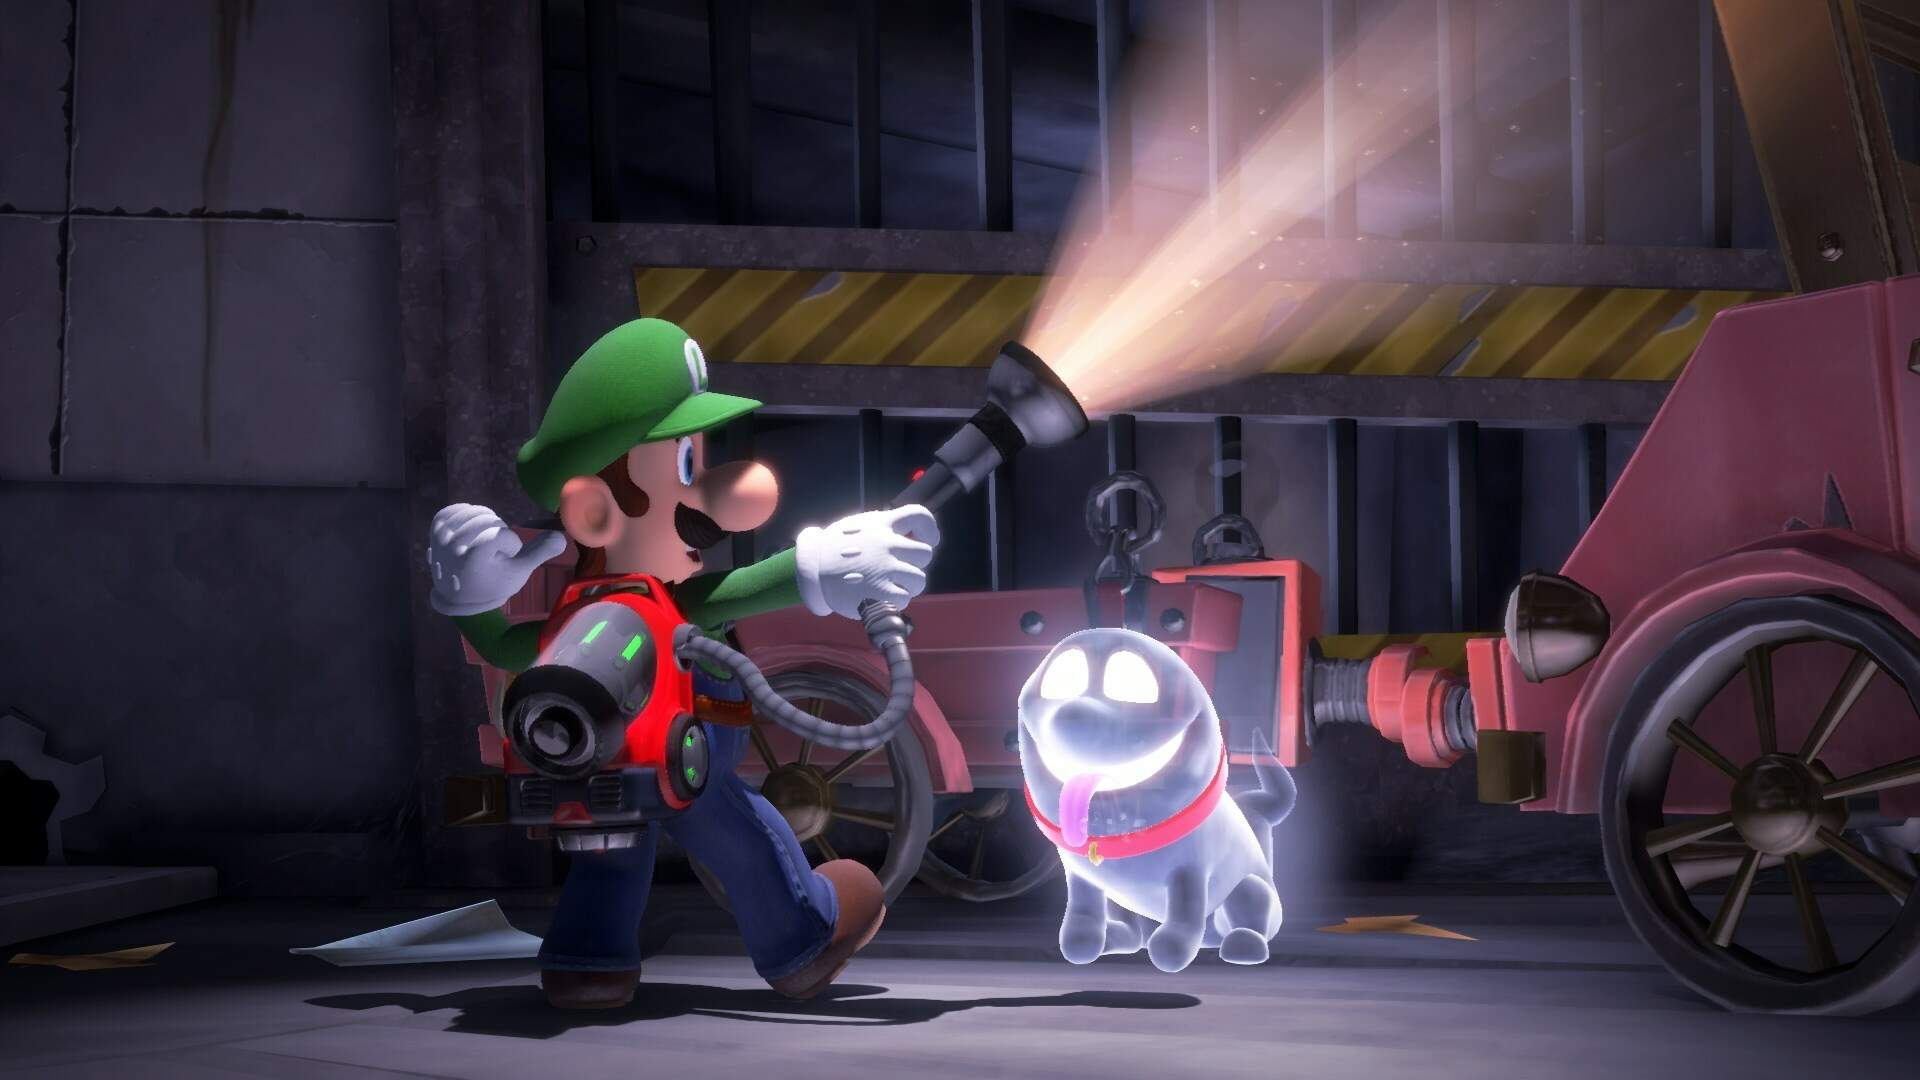 Luigi's Mansion 3 Achievements: How to Check Your Achievements